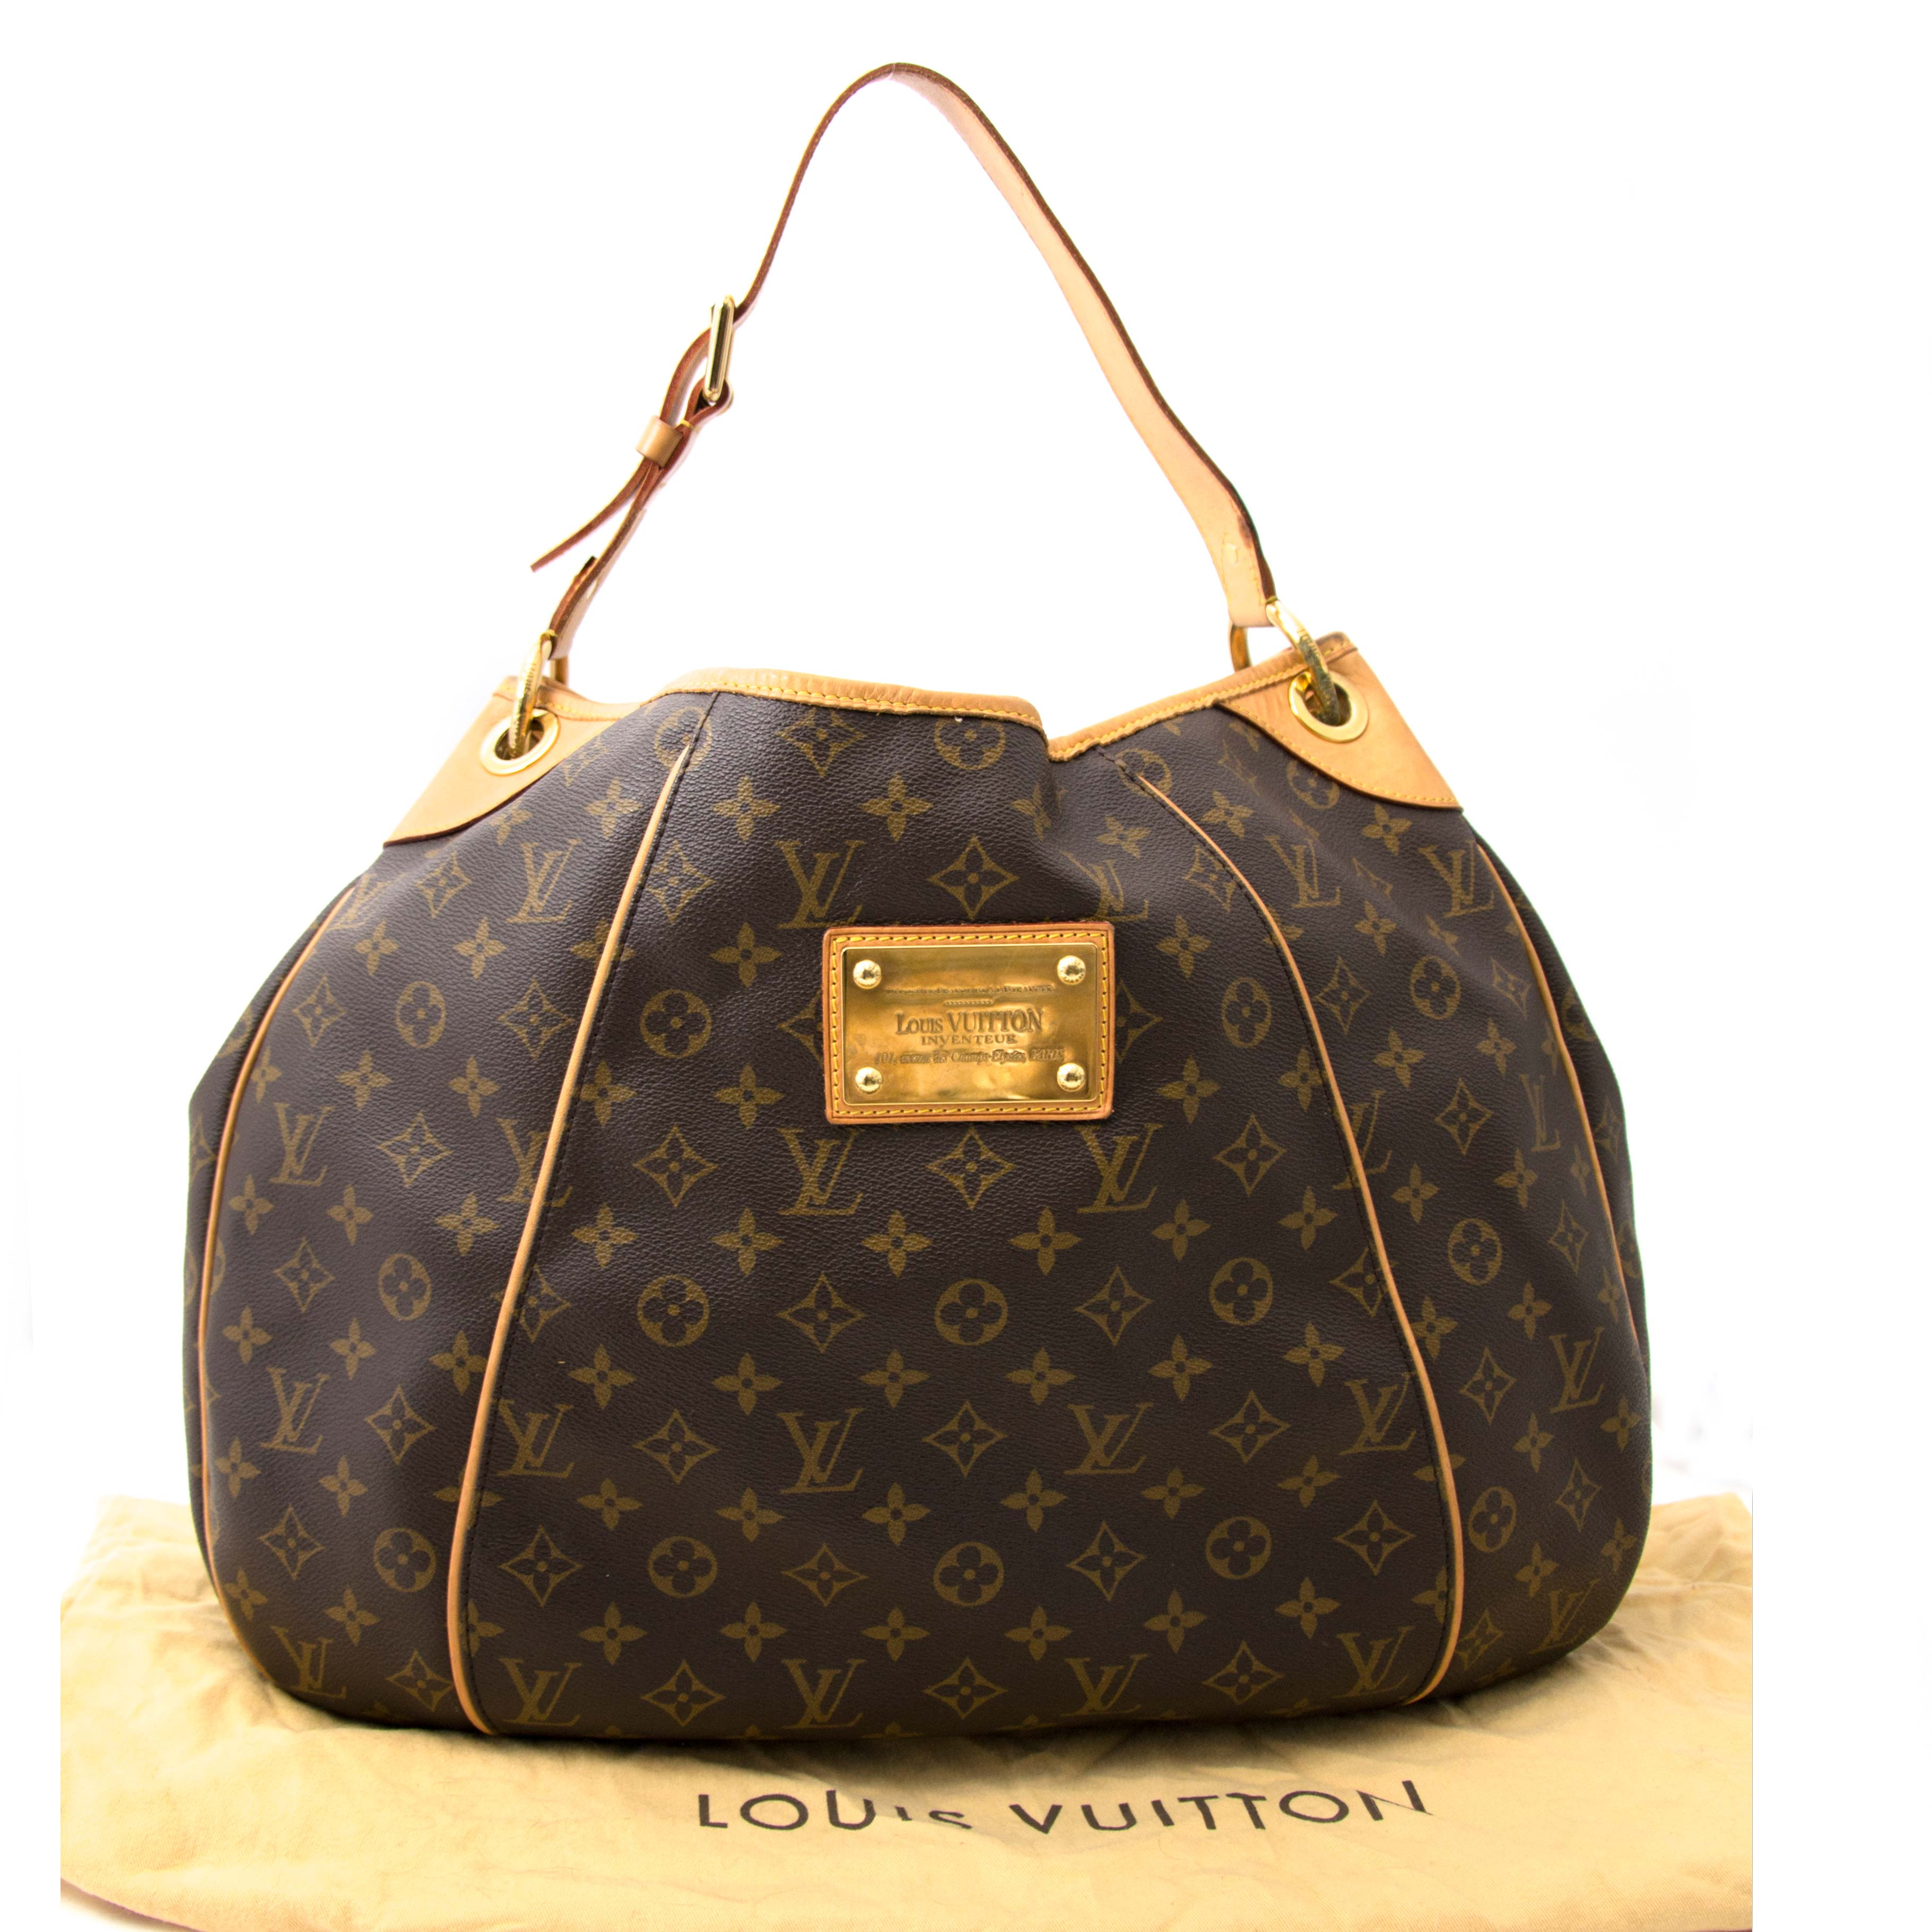 looking for a second hand Louis Vuitton Damier Galliera GM Hobo Bag